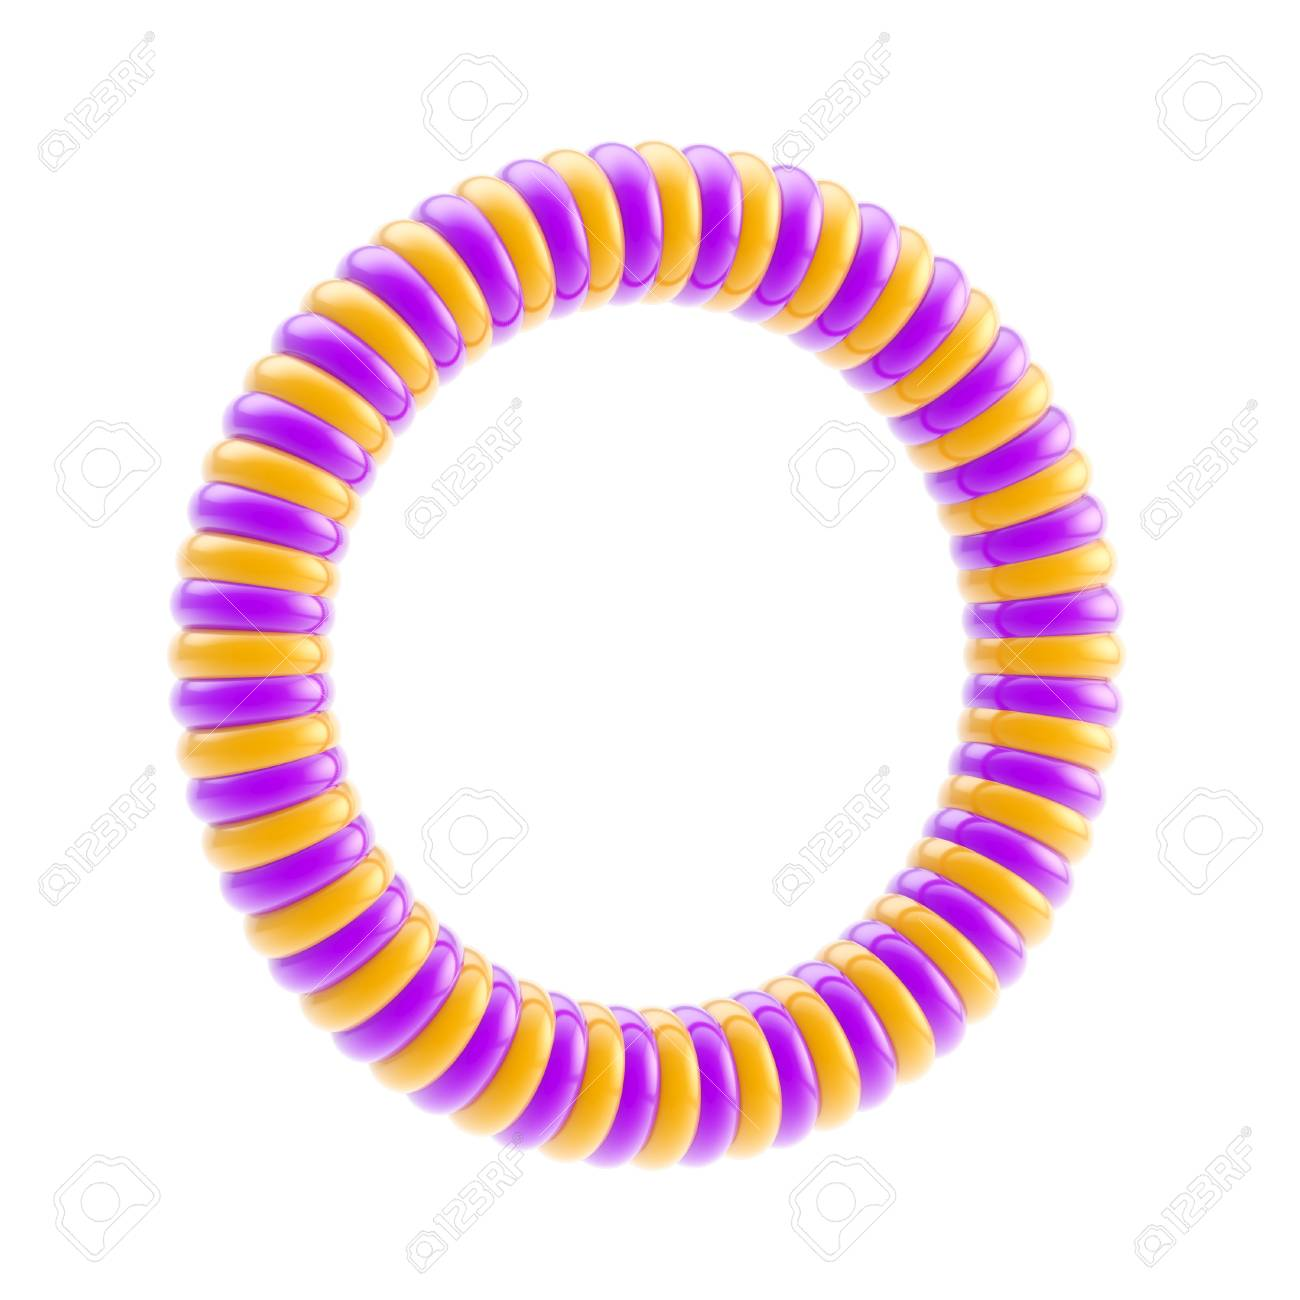 Round circular copyspace frame isolated Stock Photo - 13279074